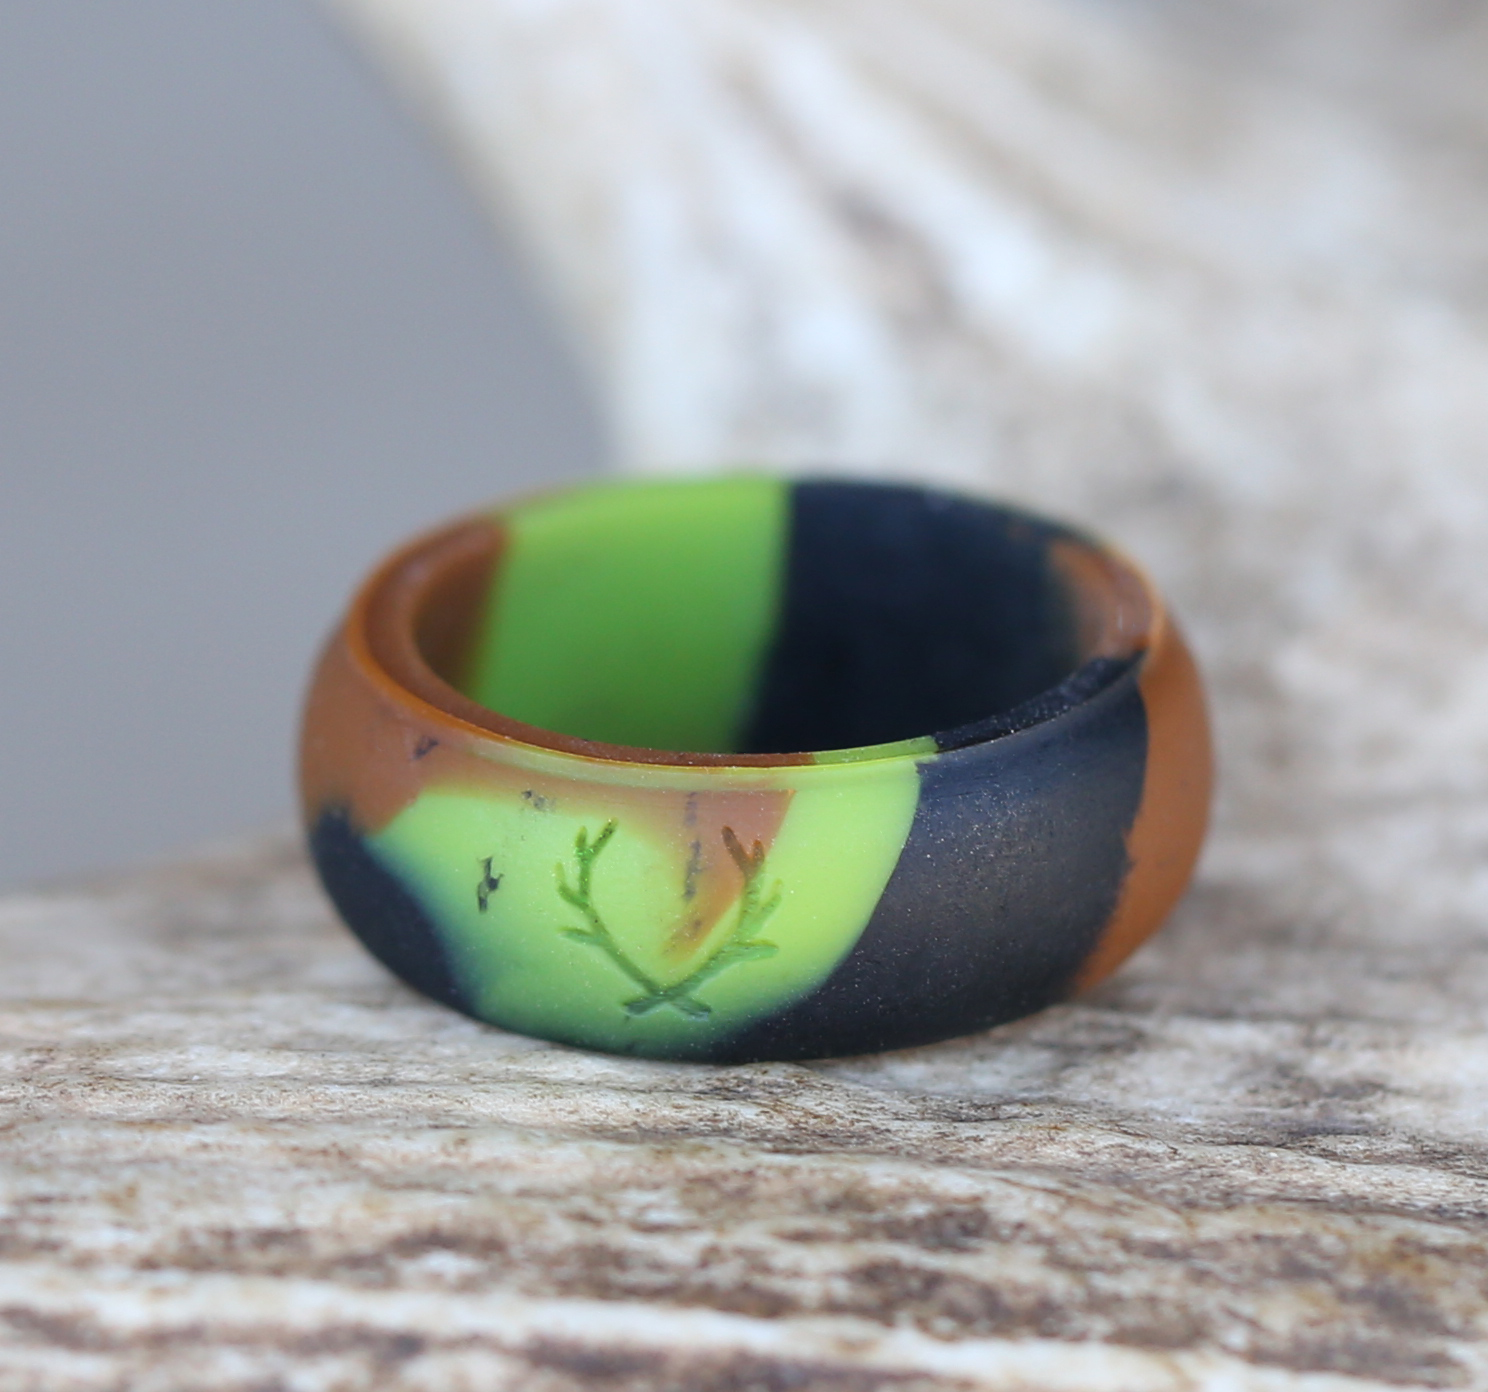 wear in the wild rings safety wedding band Camo silicone wedding band